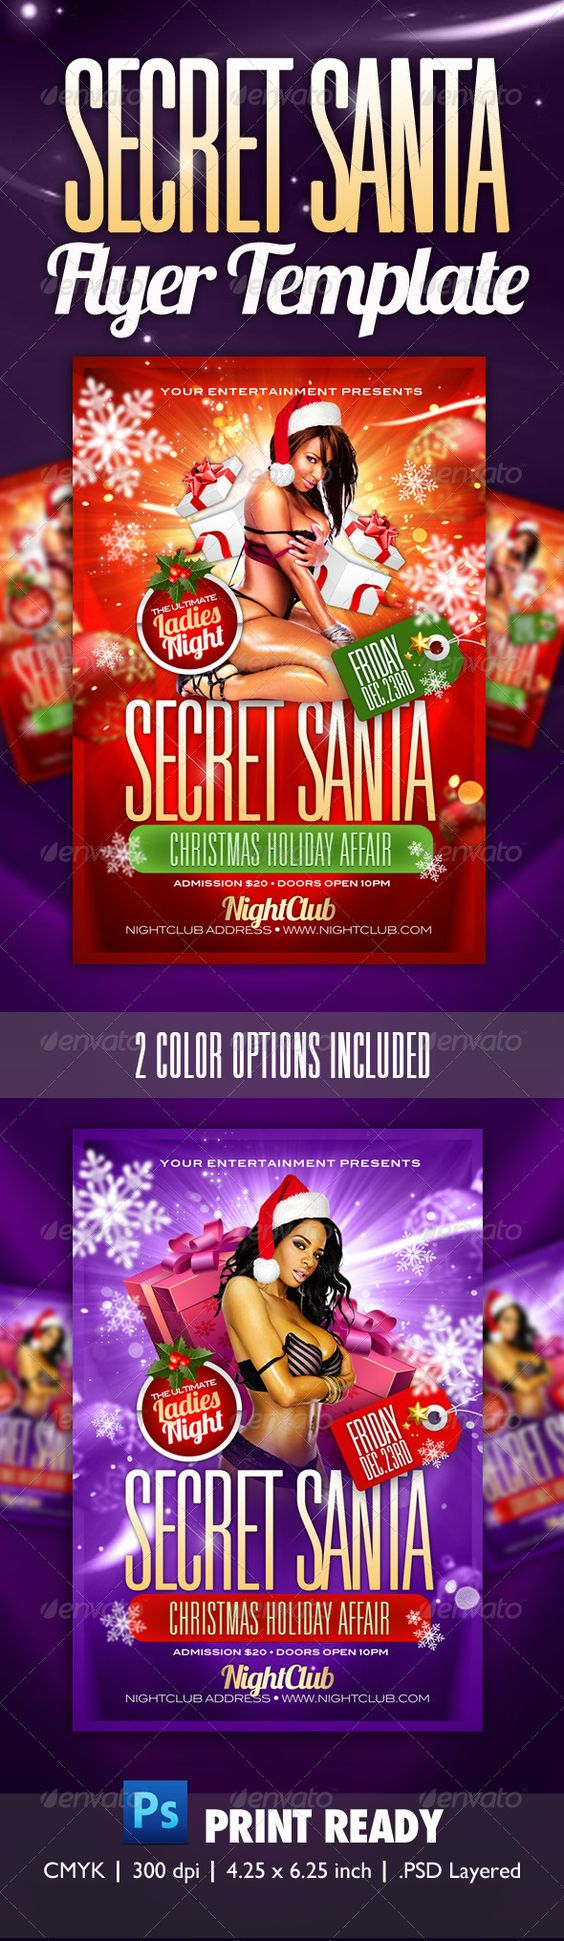 Secret Santa Party Flyer Template | Christmas parties, Snowflakes ...